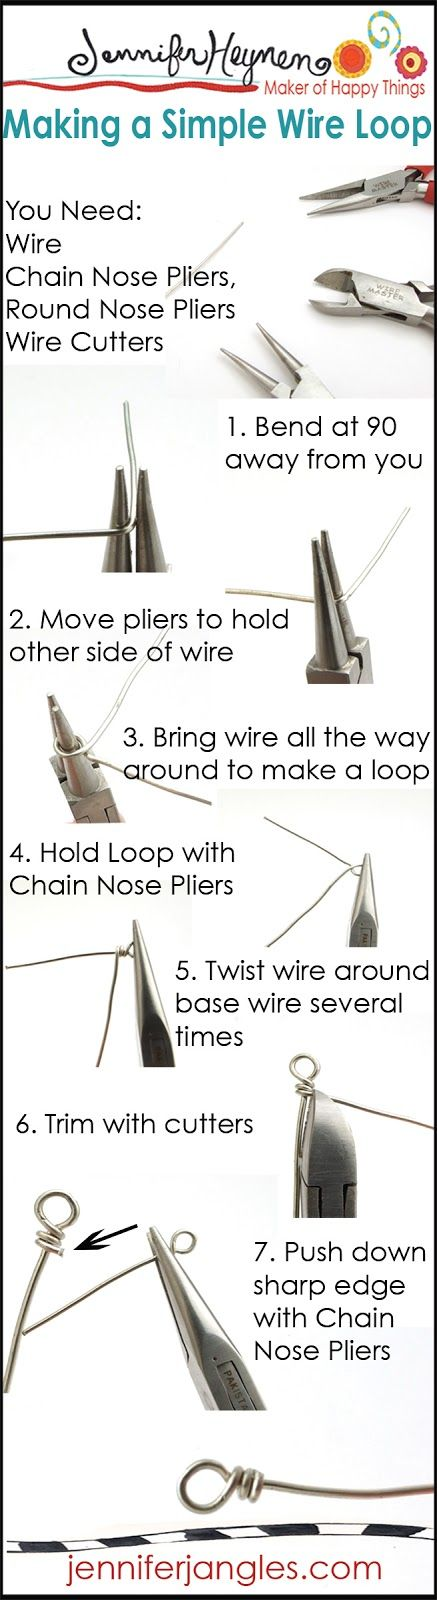 Stacked Ornaments Project and Making A Simple Wire Loop - Jennifer Jangles